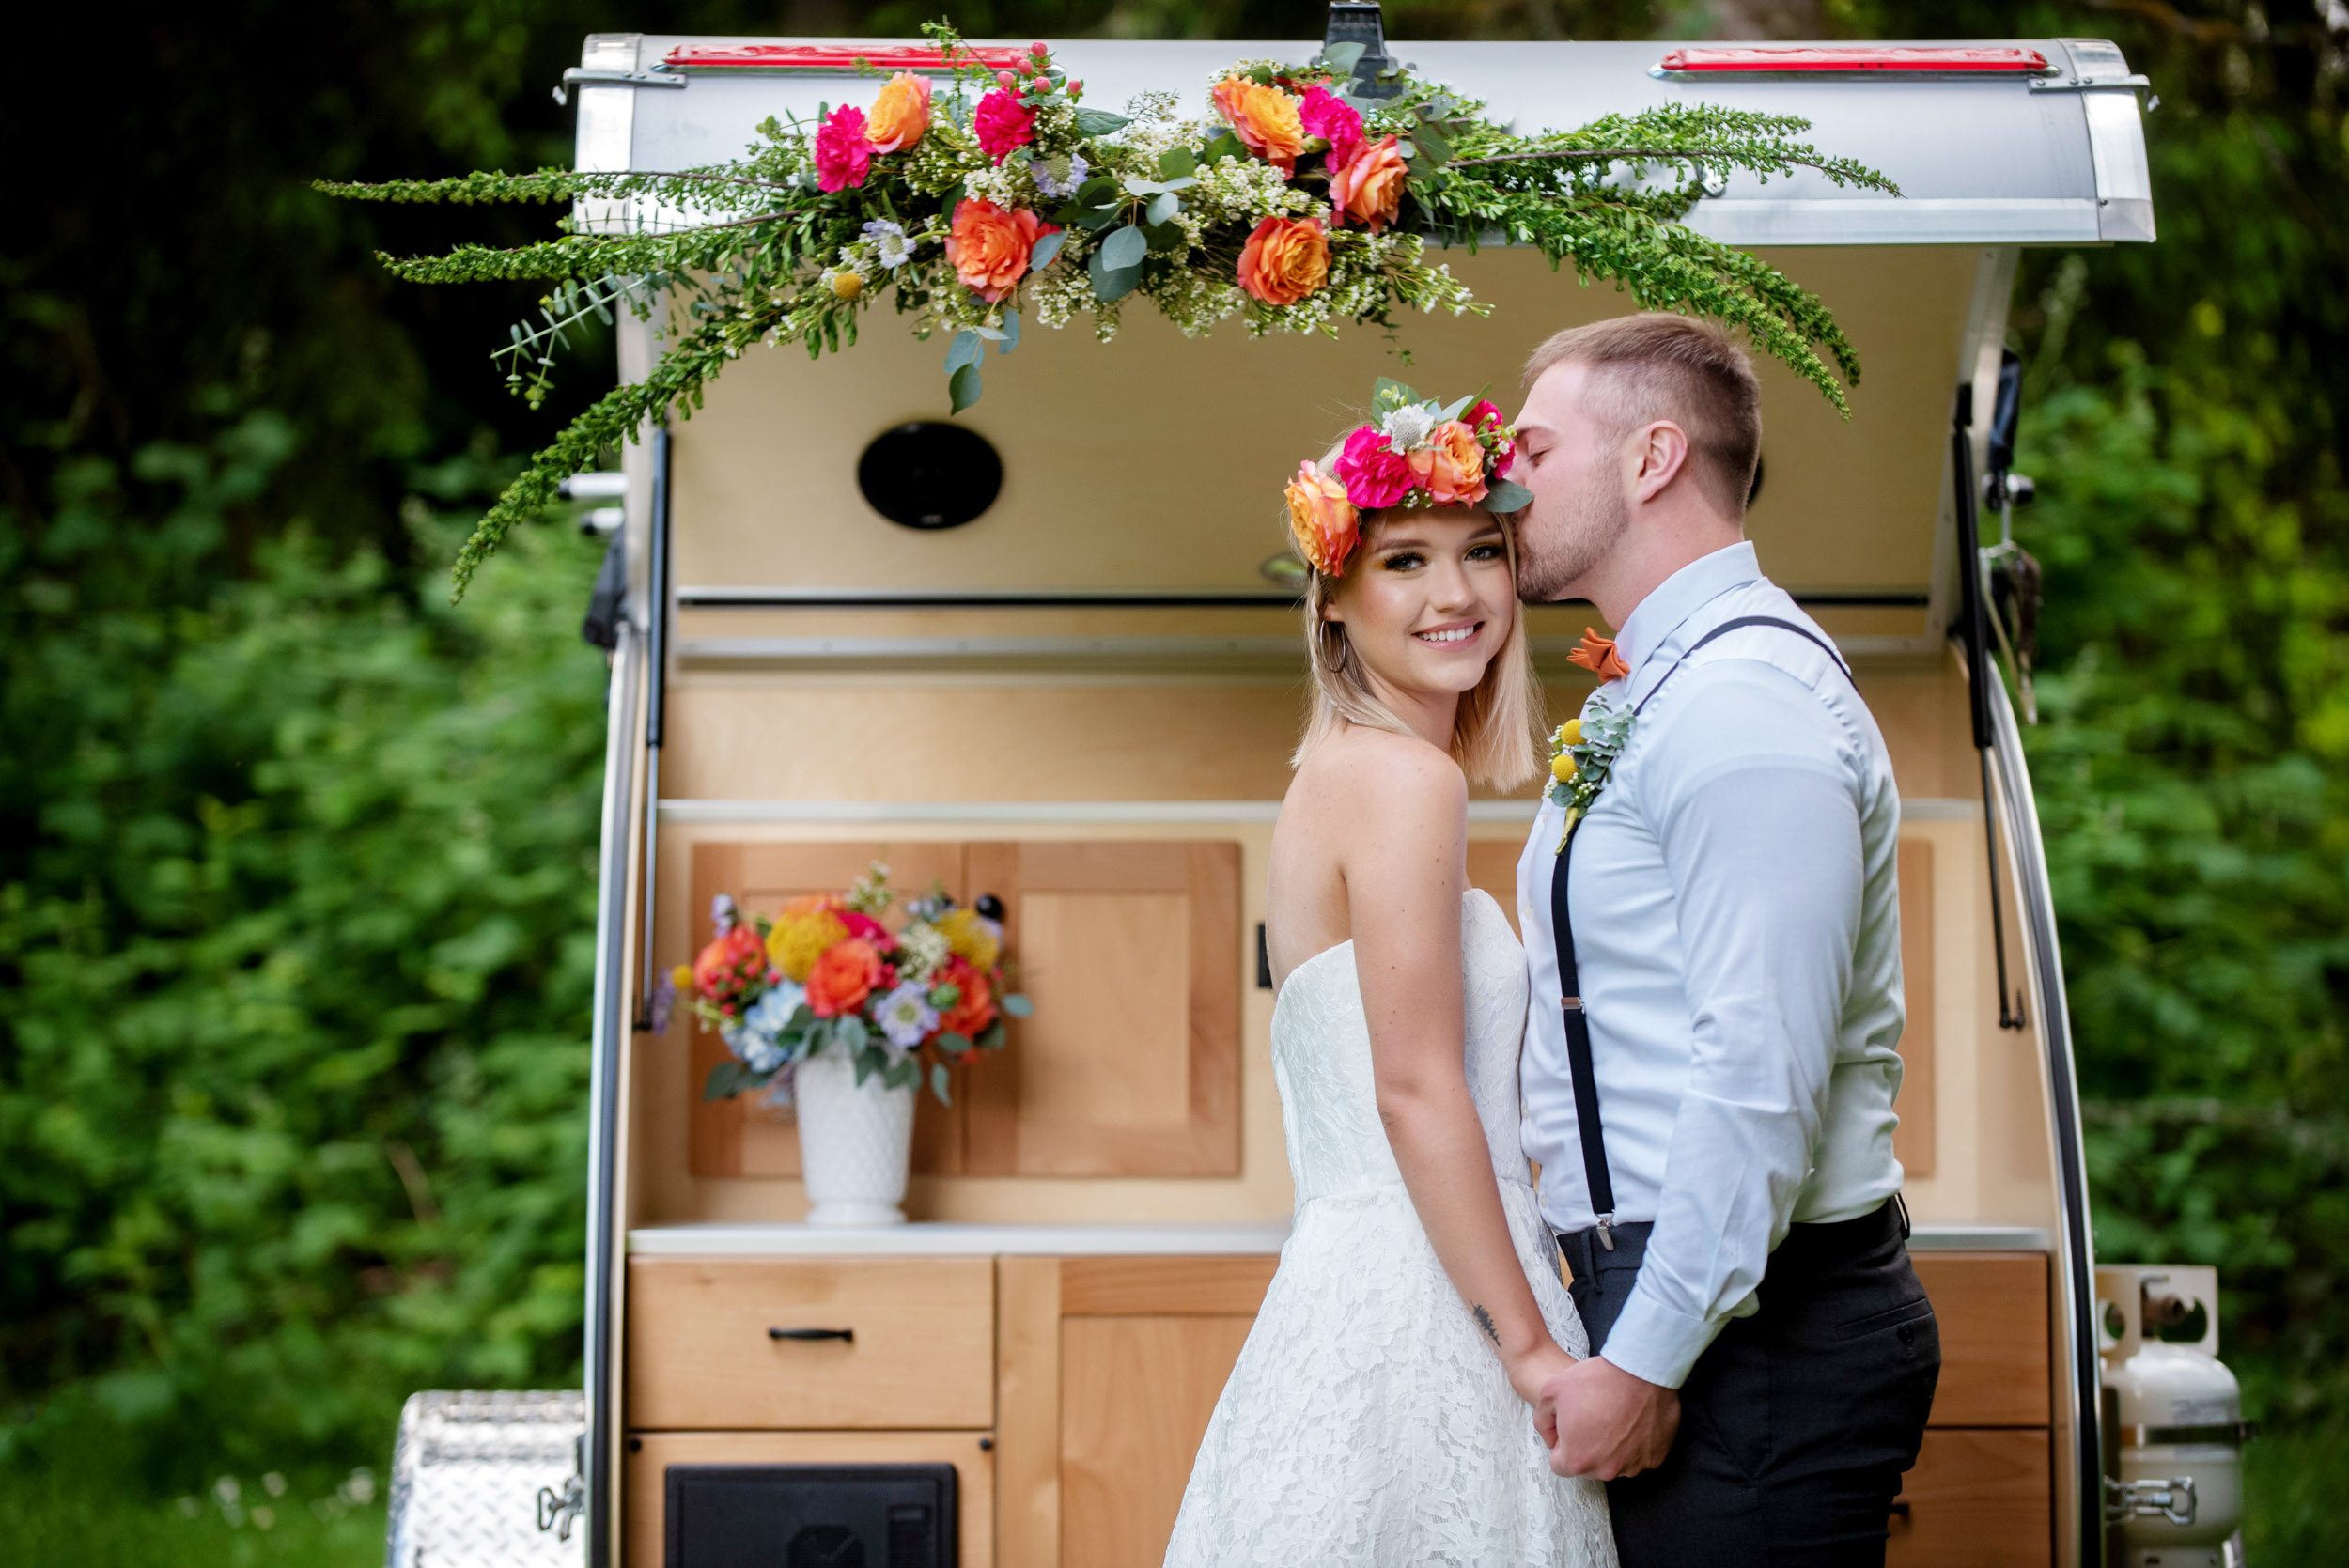 Wedding on Wheels, an adventure elopement package in the Pacific Northwest